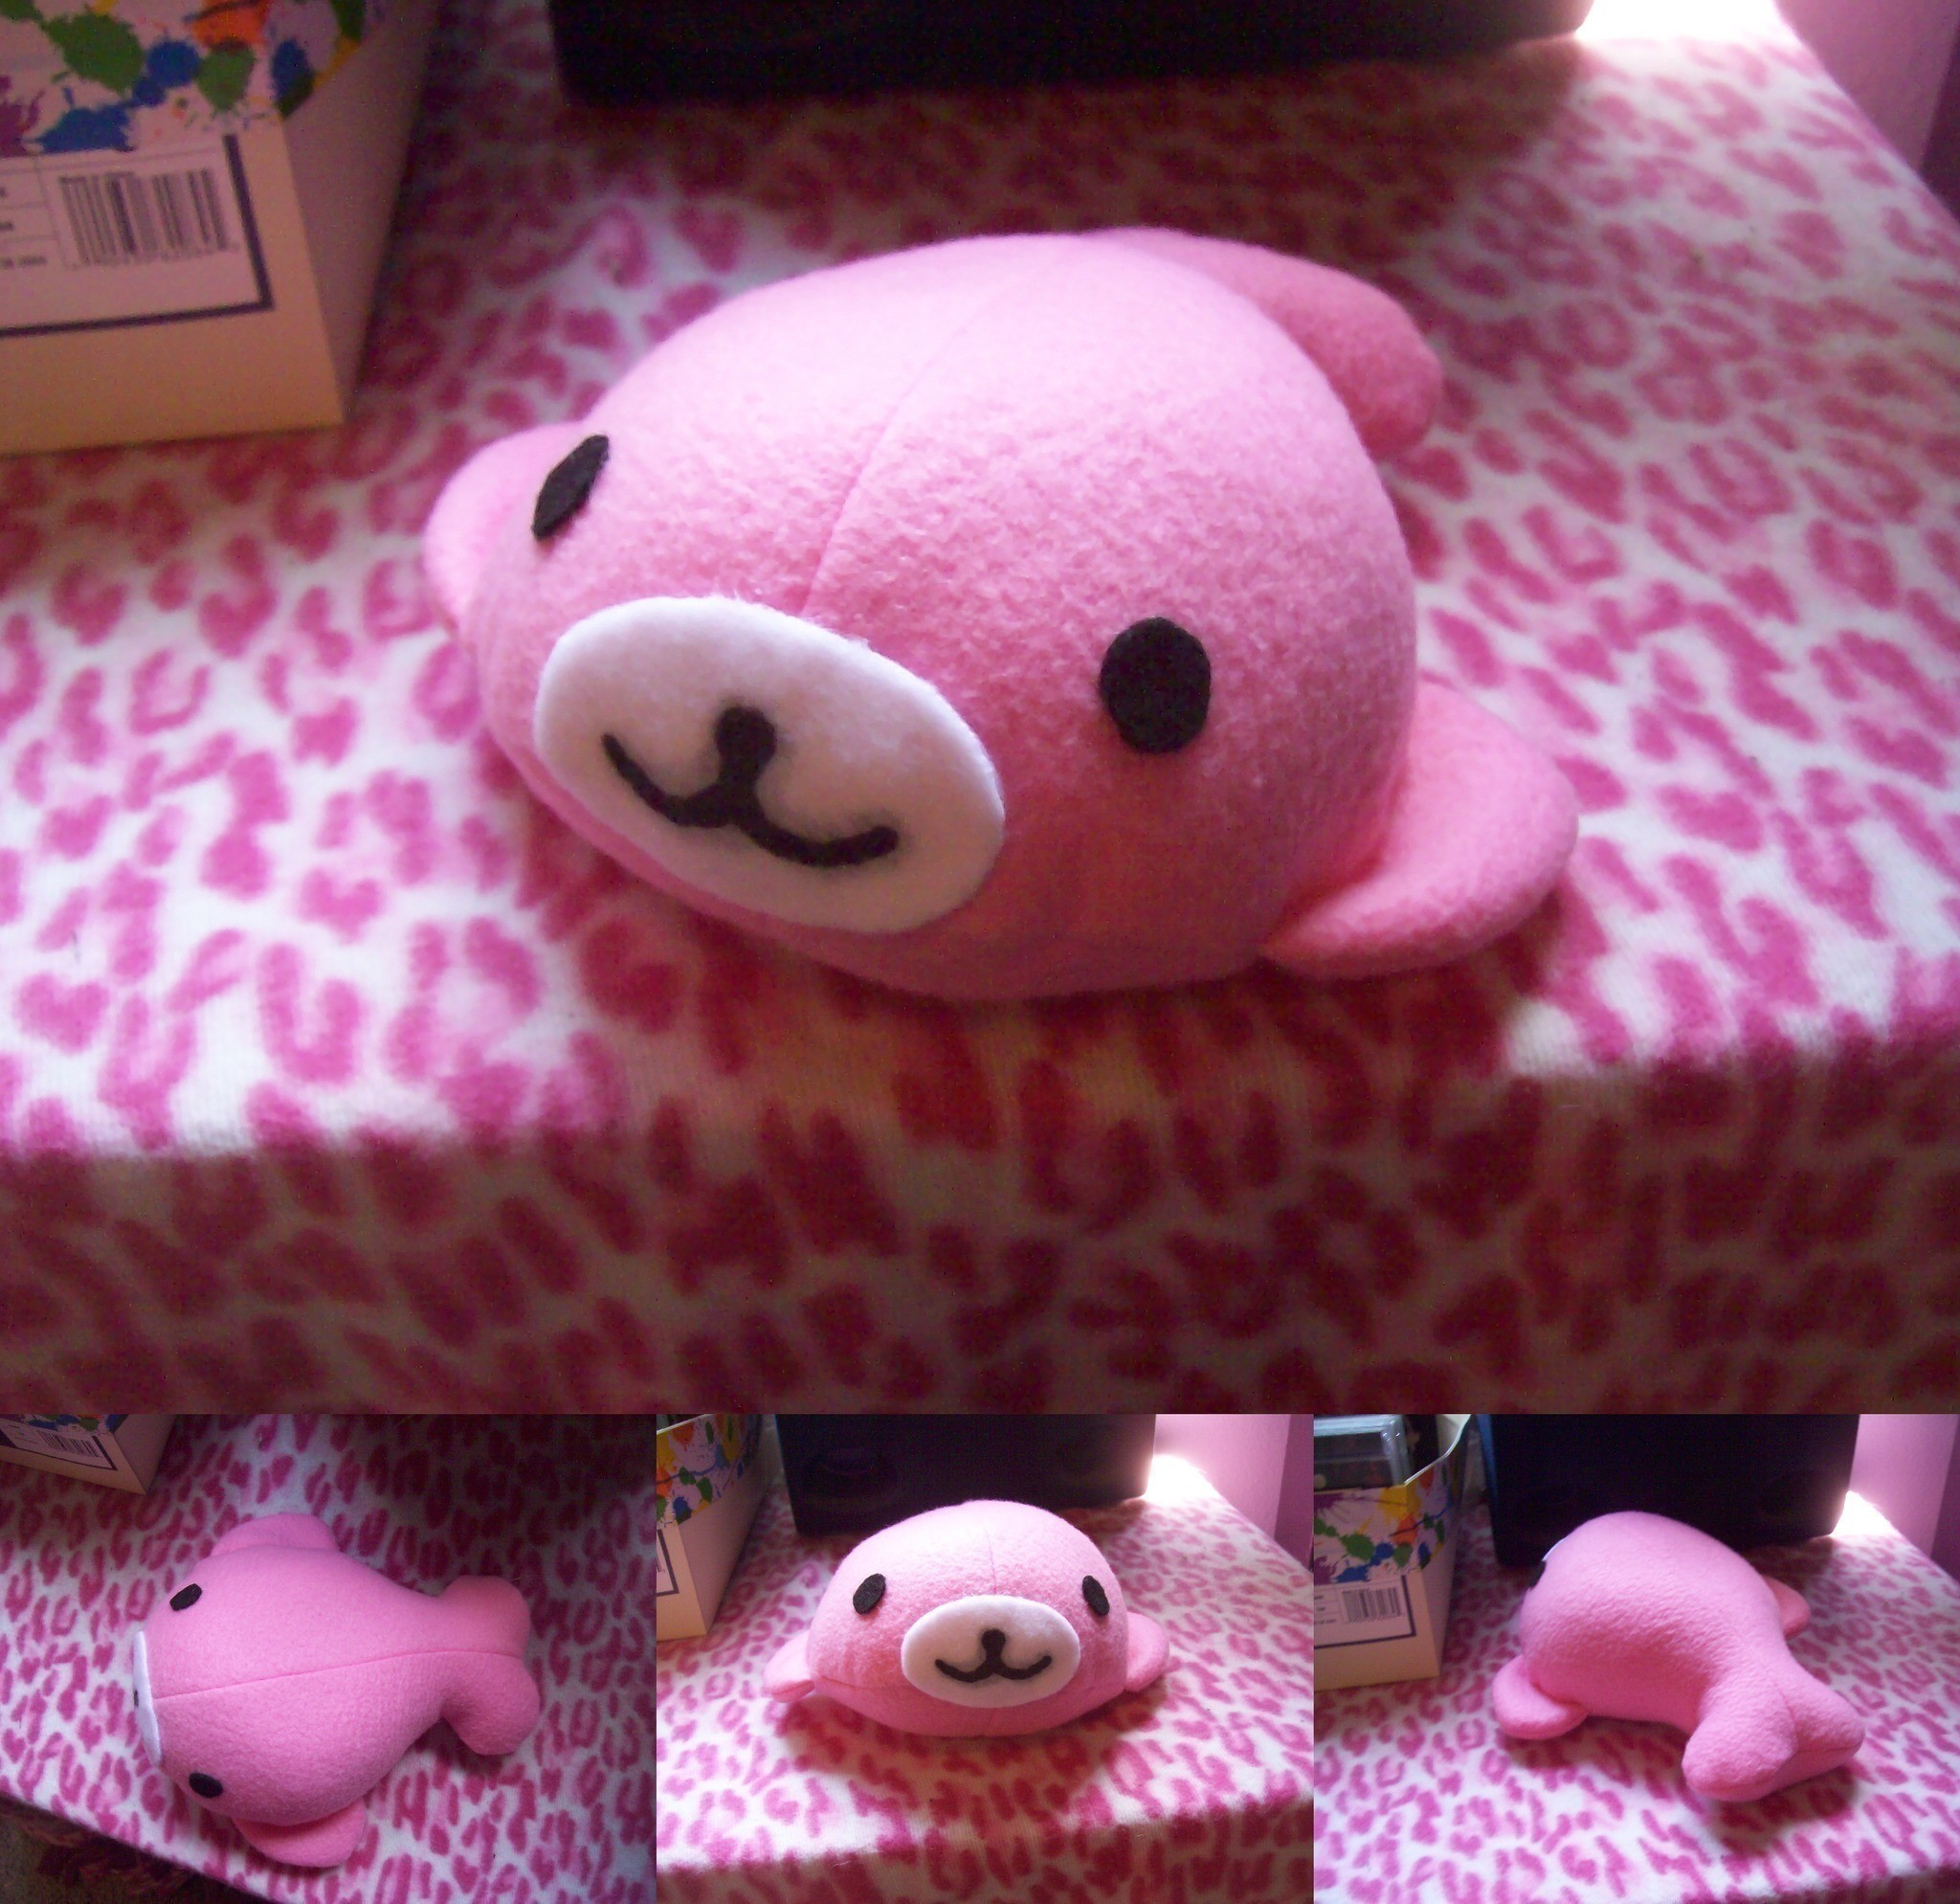 Sewing Plushies Tutorials Mamegoma Plush Tutorial And Pattern Link A Manatee Plushie